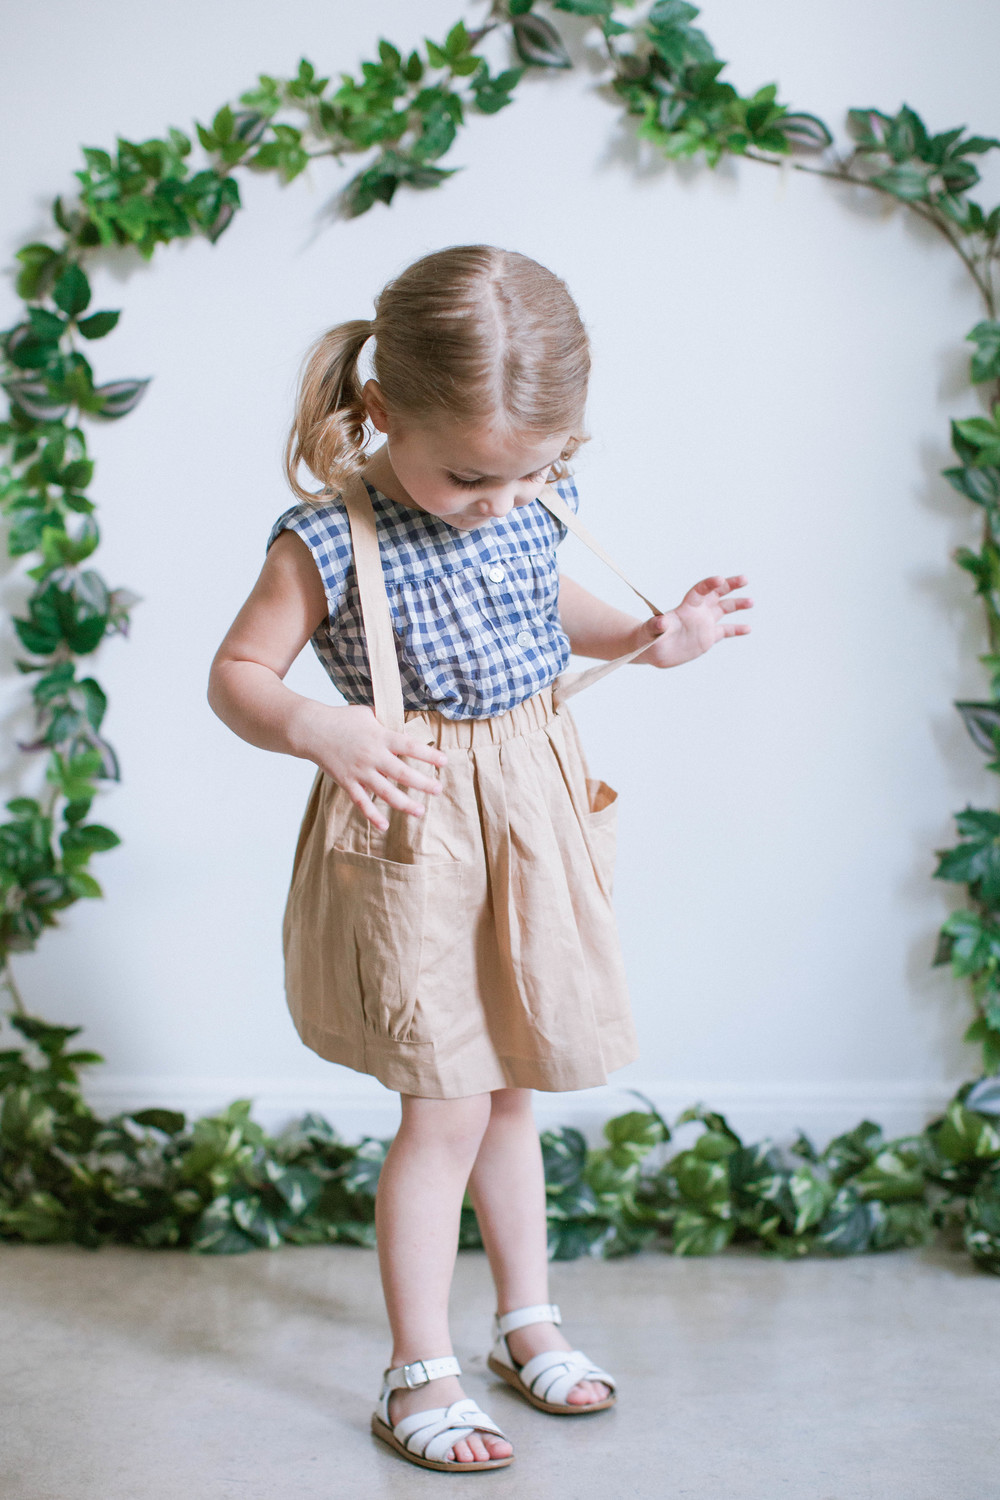 Top: Soor Ploom. Skirt: Olive Juice. Sandals: Saltwater.